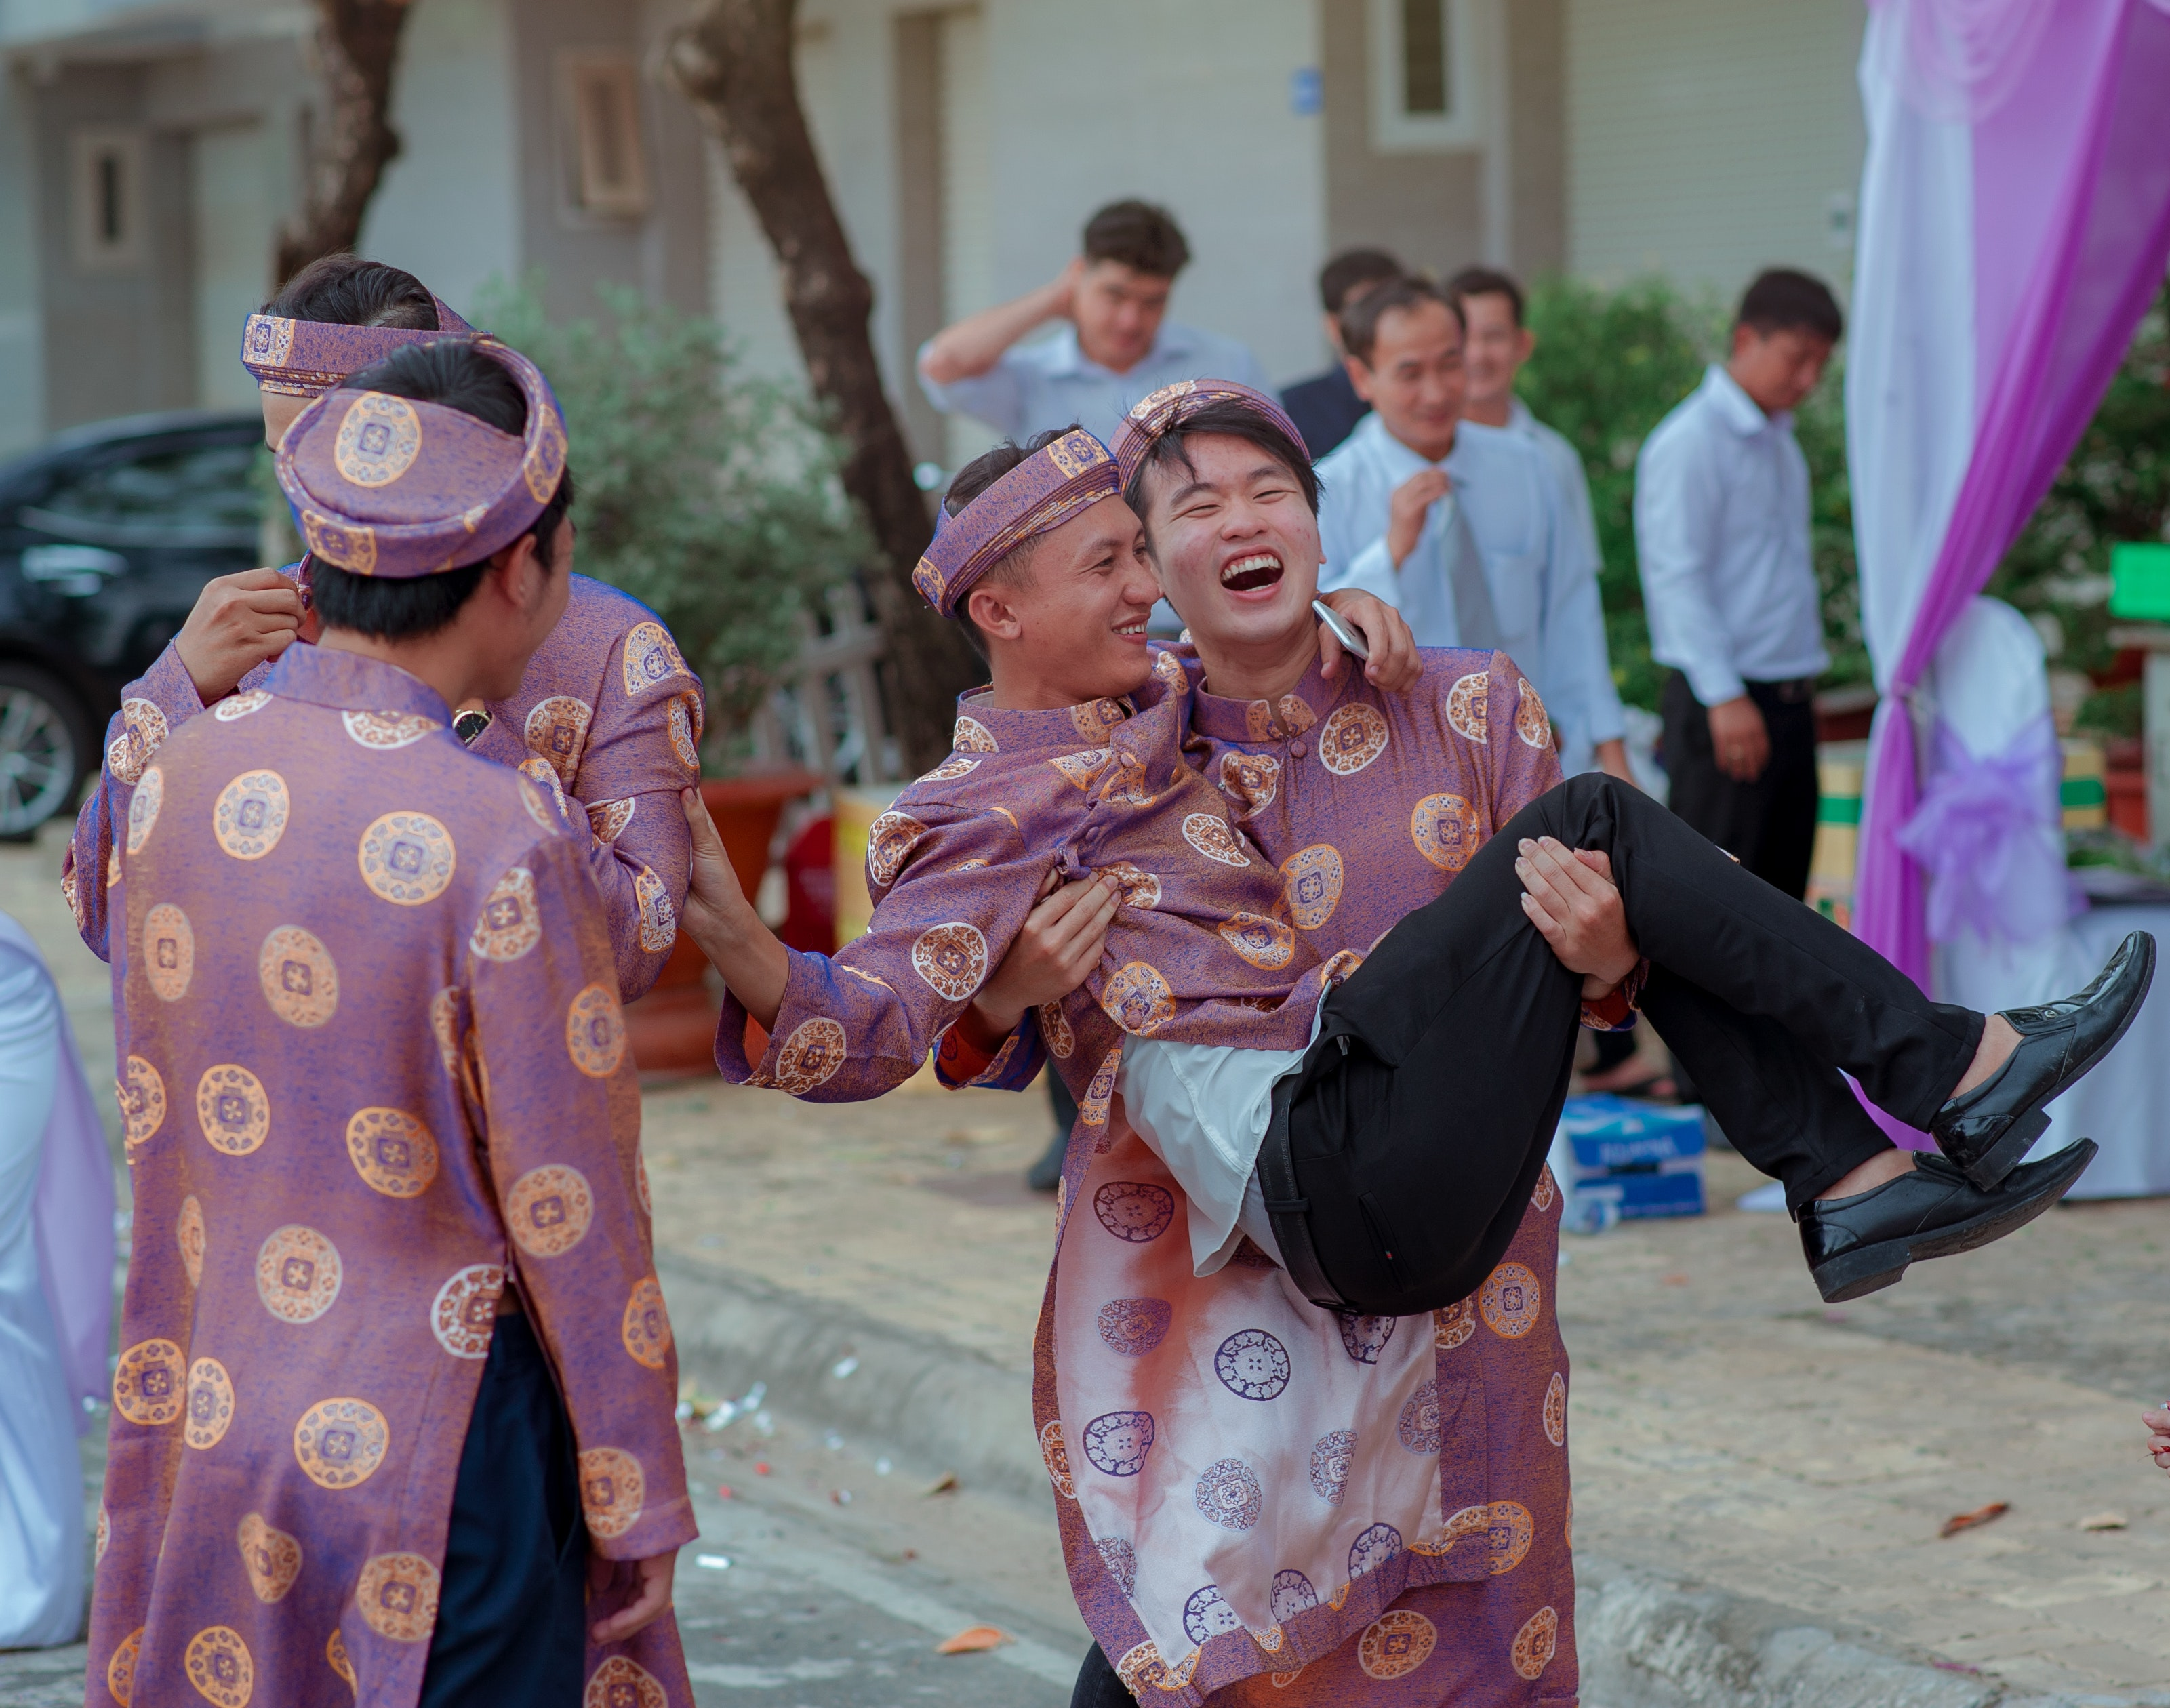 Several Men Wearing Purple-and-gold Traditional Dresses, Car, Celebration, Culture, Daylight, HQ Photo